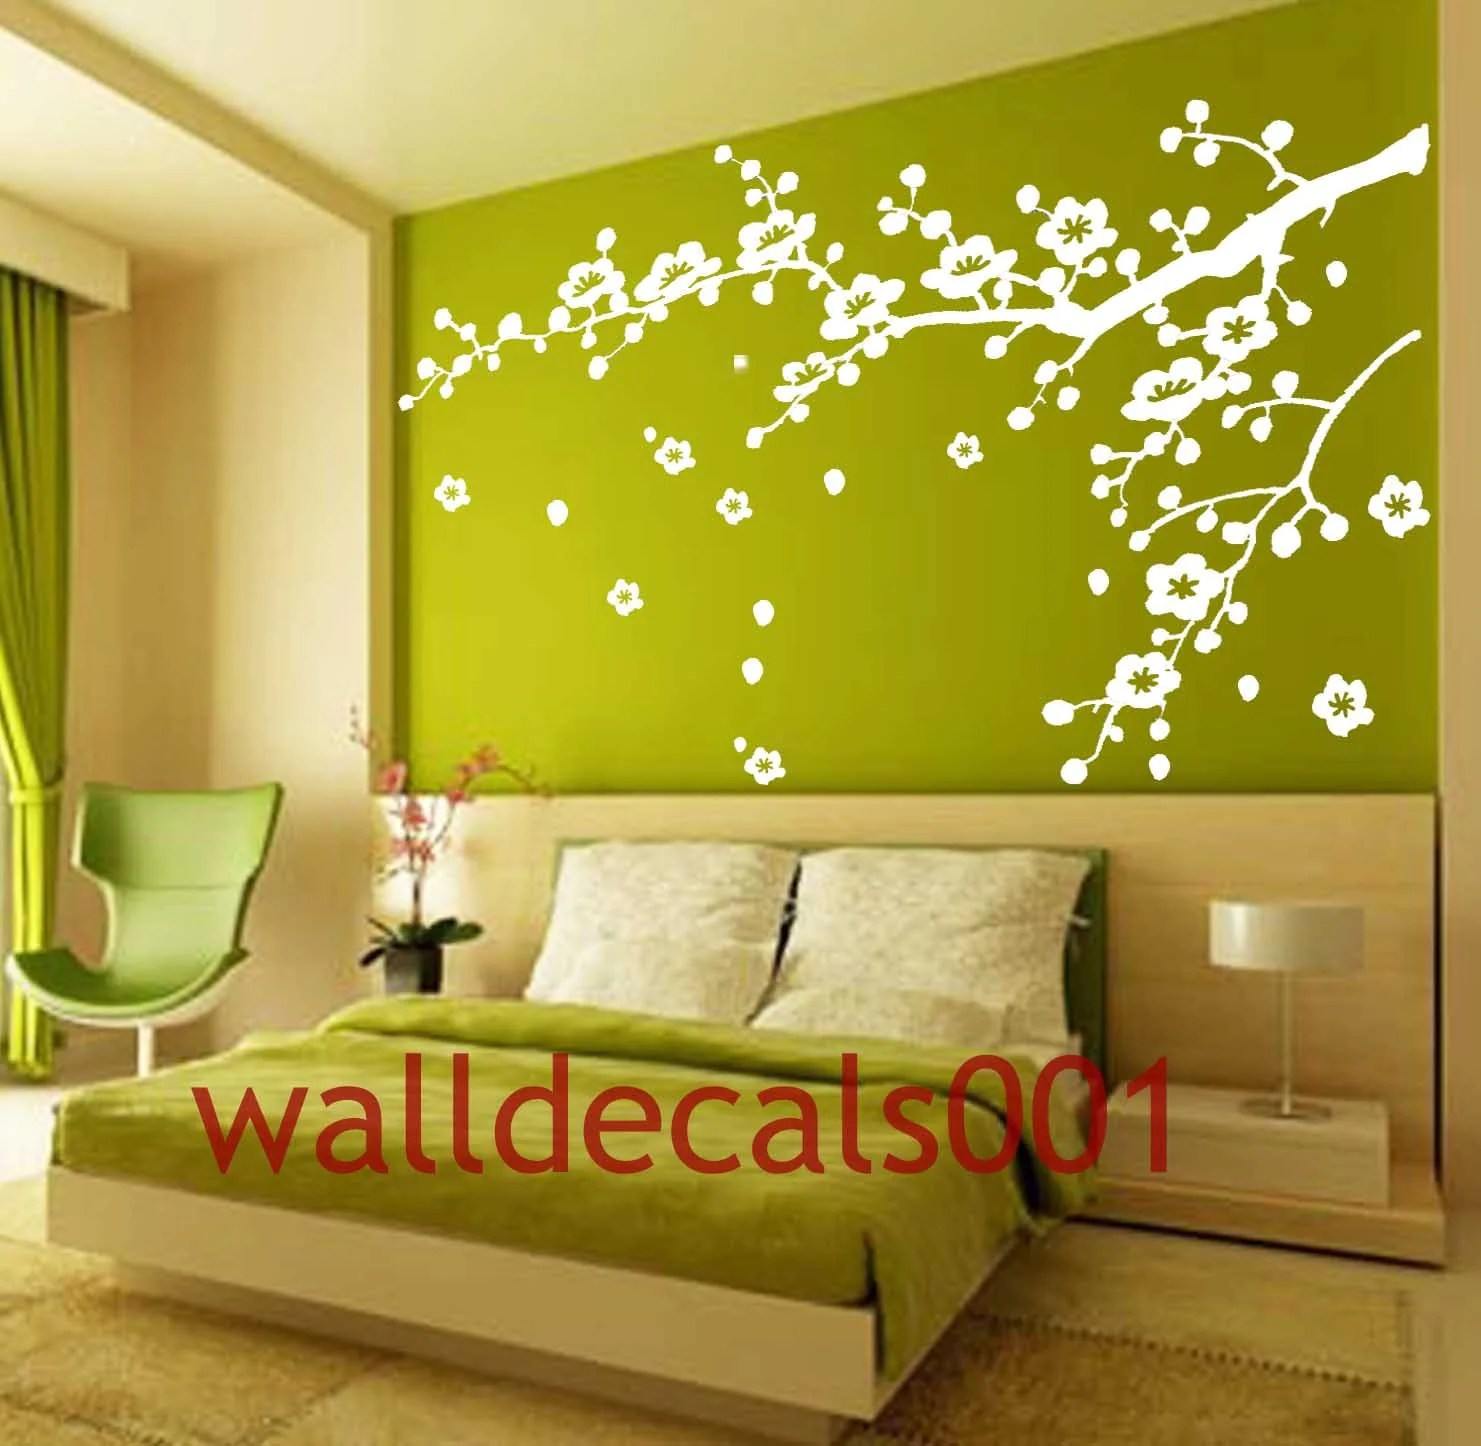 Vinyl Wall Decal Wall Decor Decals Rumah Minimalis